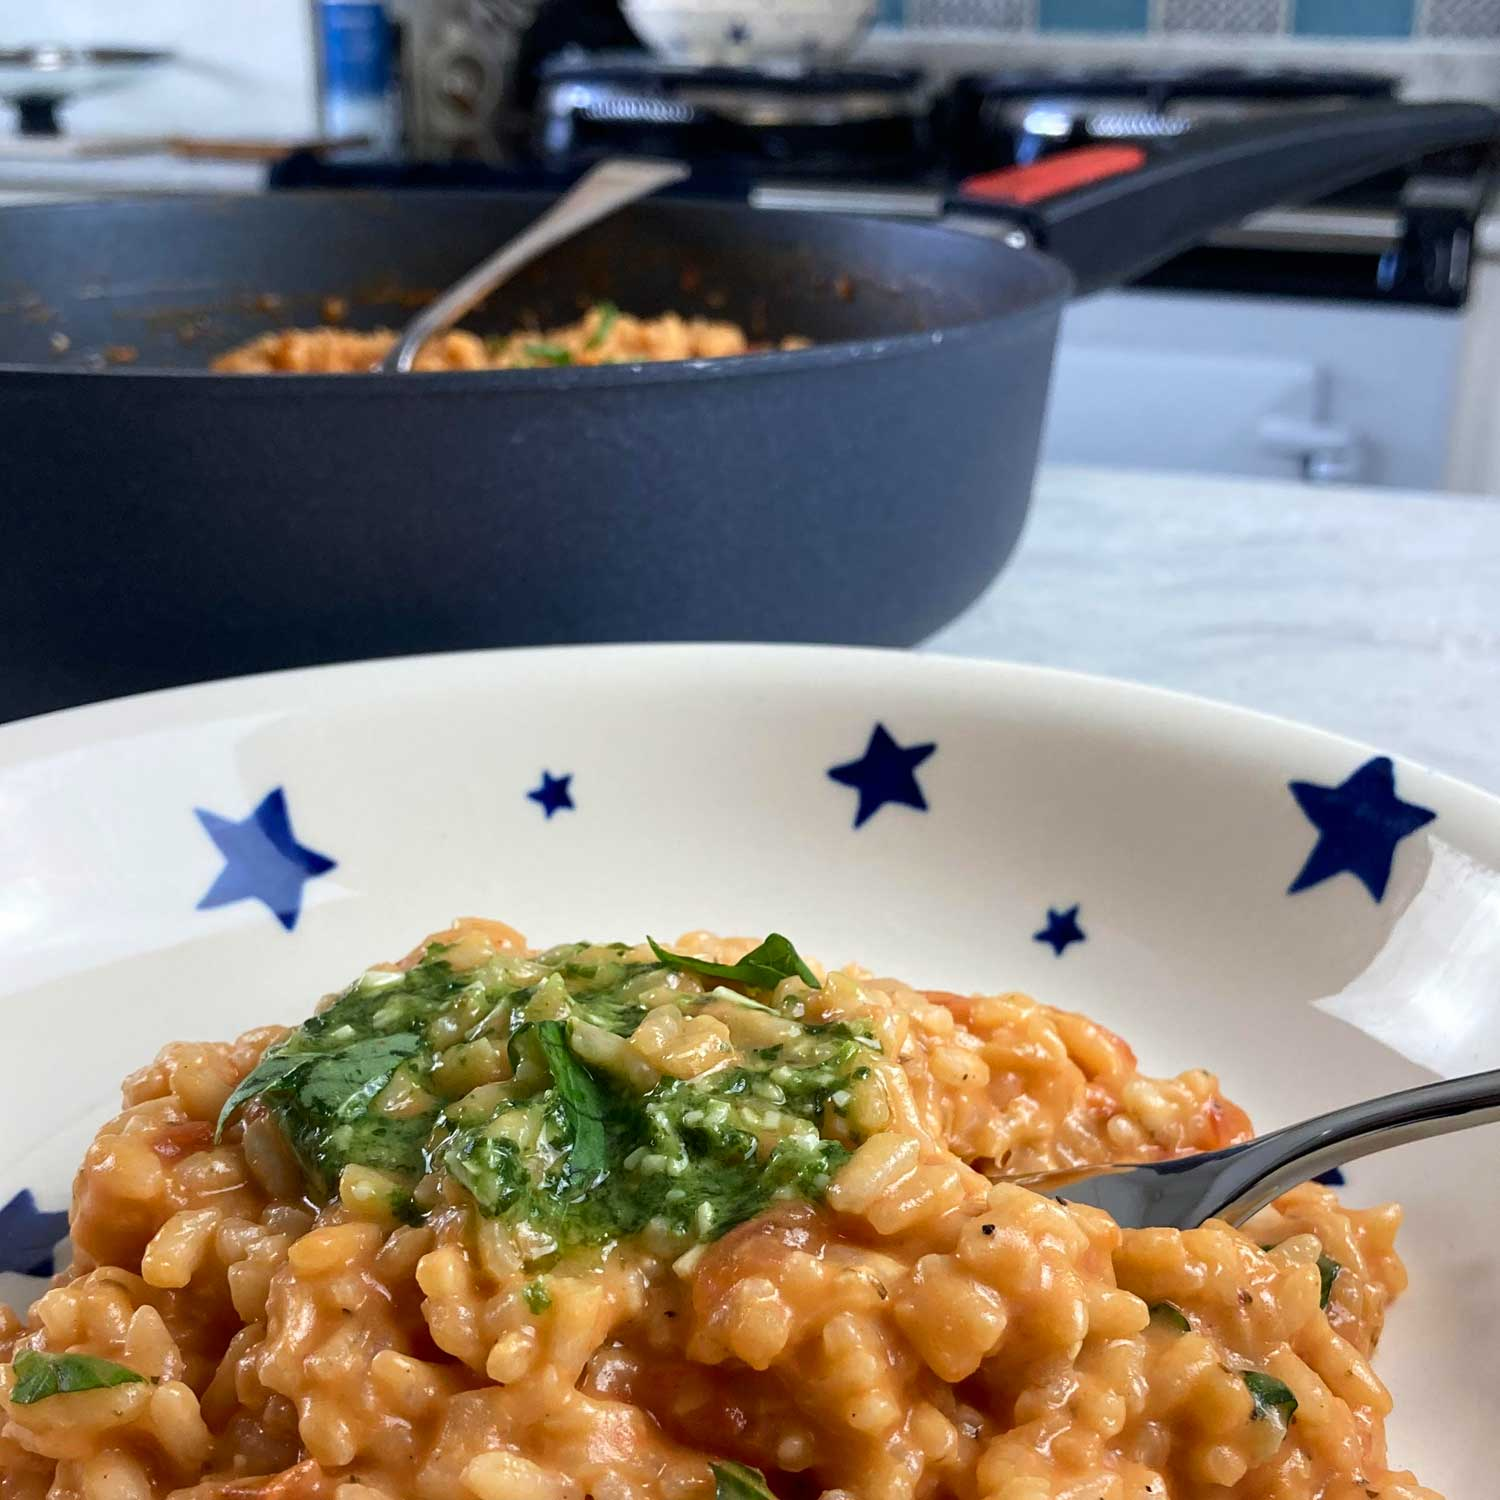 Tomato and Mascarpone Risotto